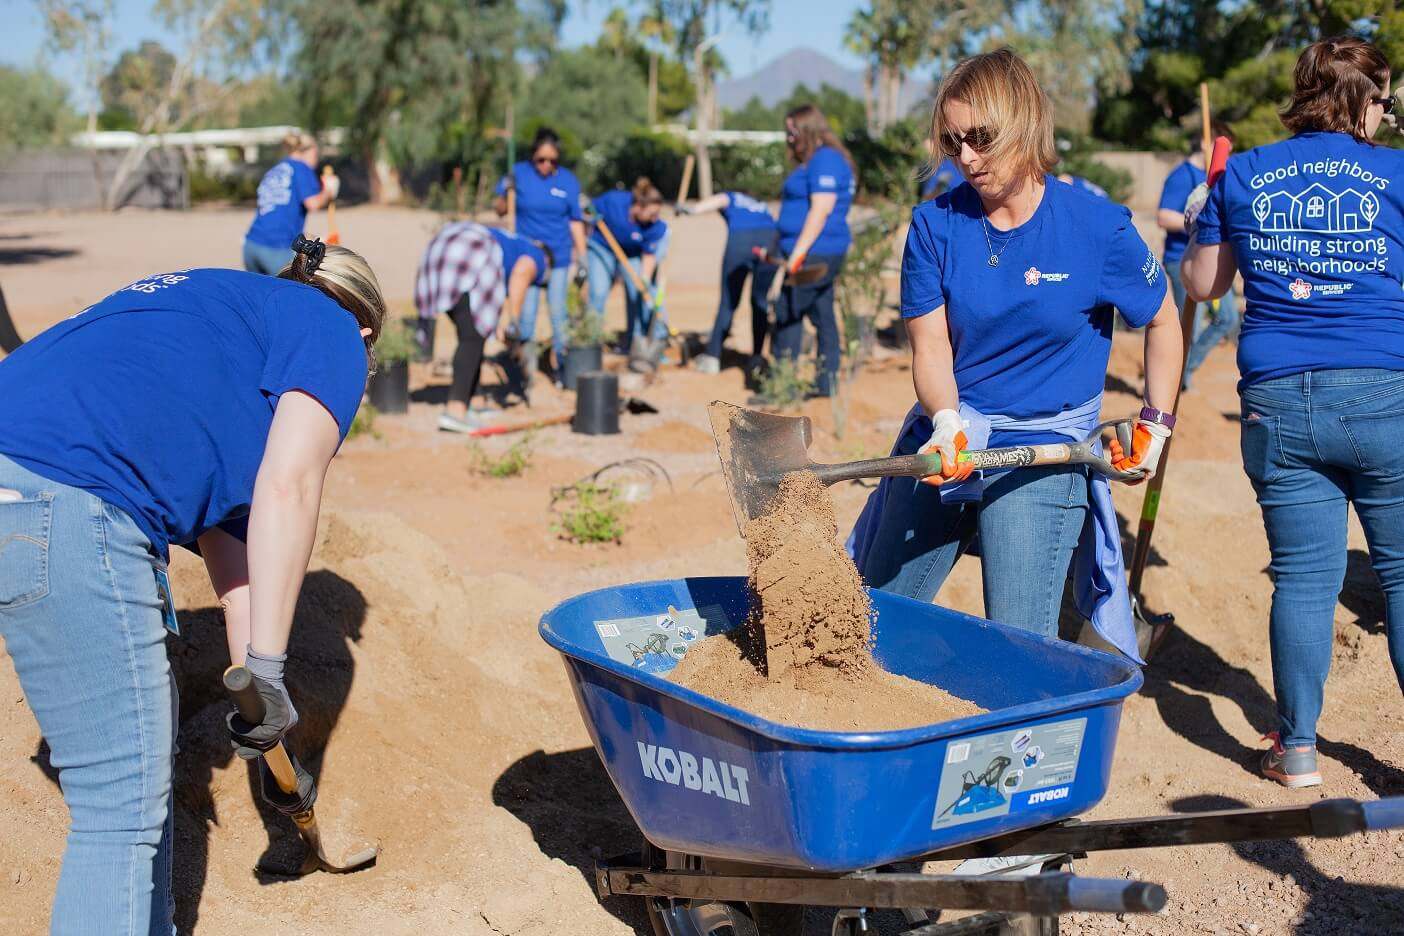 Volunteers digging in holes and transfering dirt into a wheel barrow